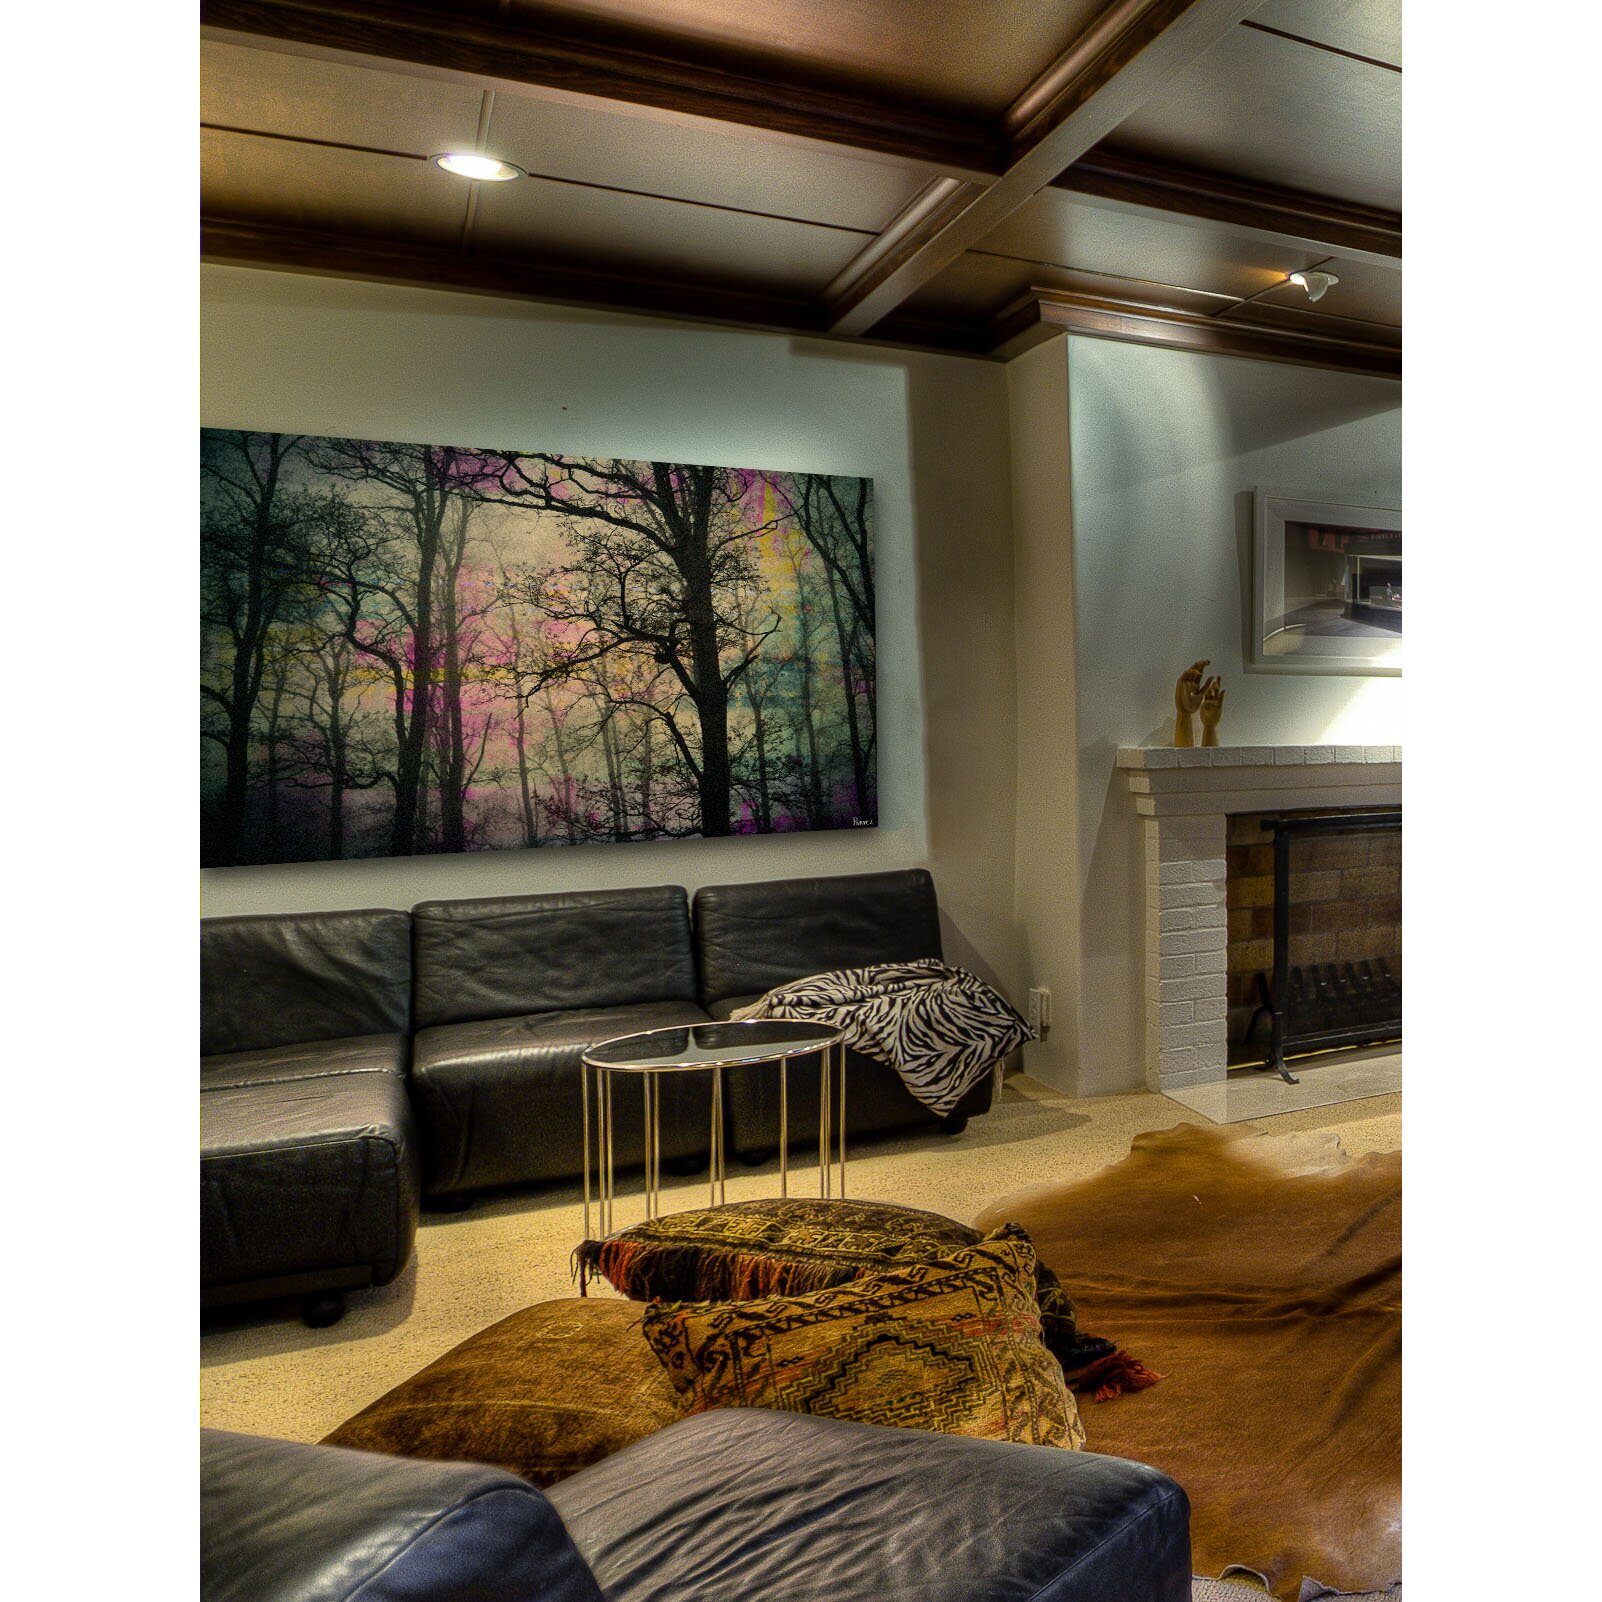 39night sight39 by parvez taj painting print on wrapped for Best brand of paint for kitchen cabinets with wall art set of 5